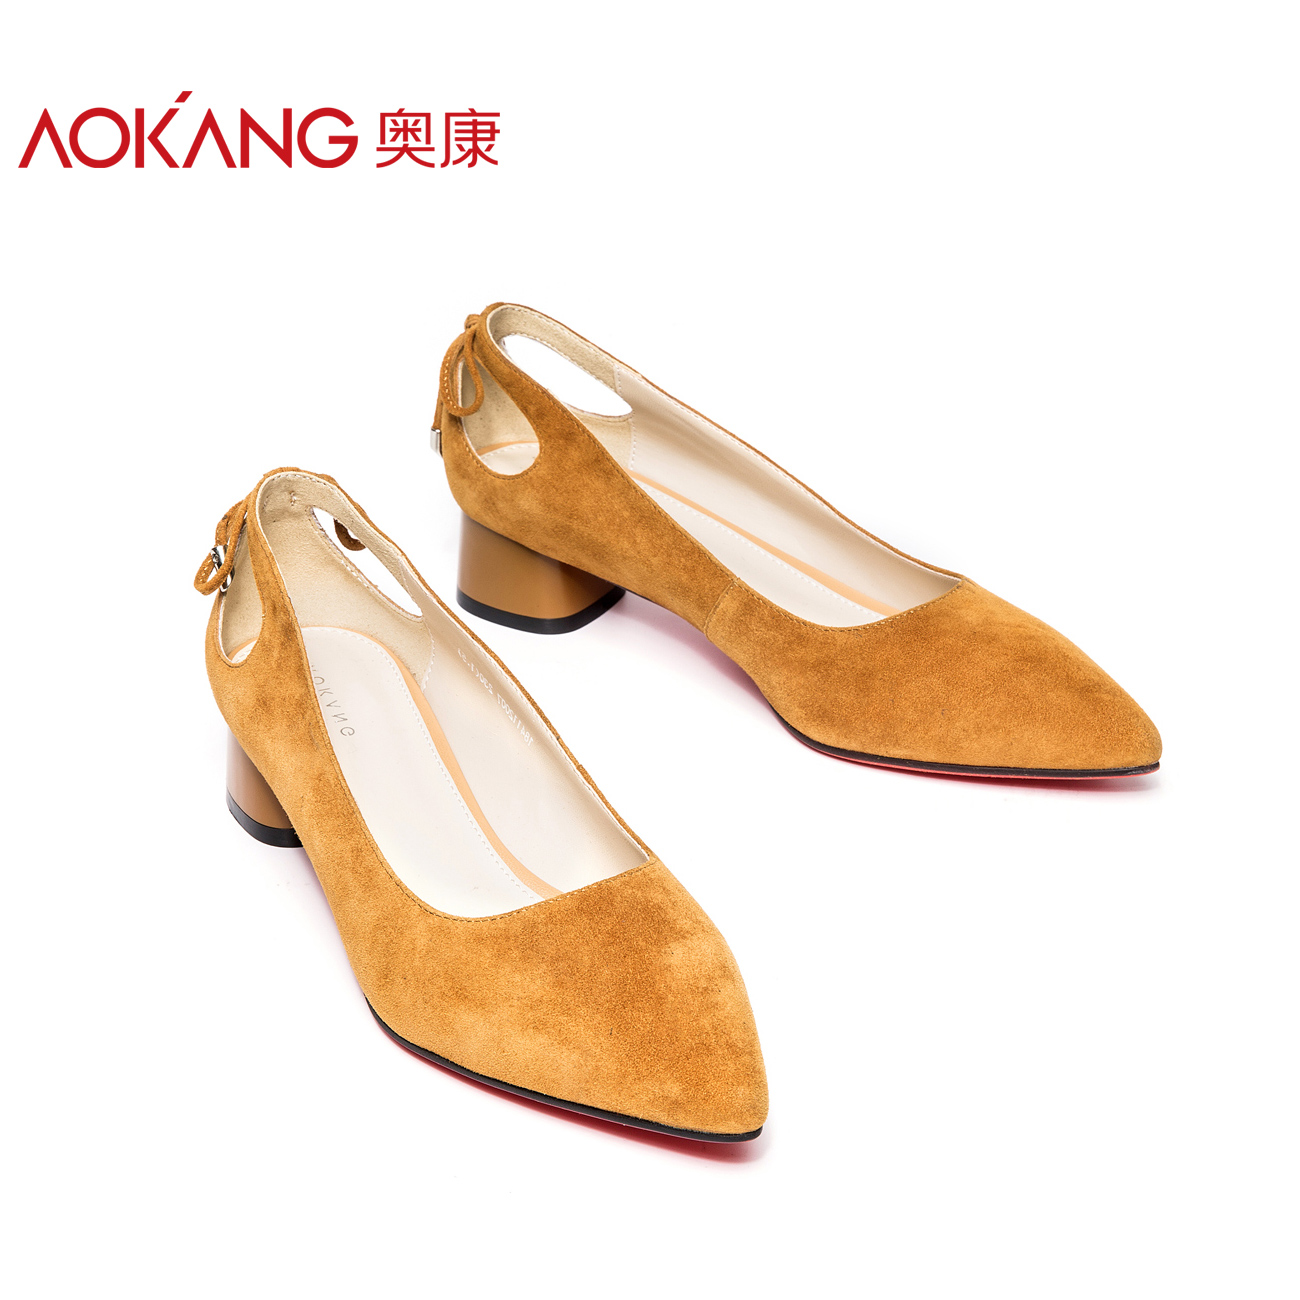 Aokang official flagship store women's shoes with 2018 new Korean fashion pointy casual tide with women's shoes